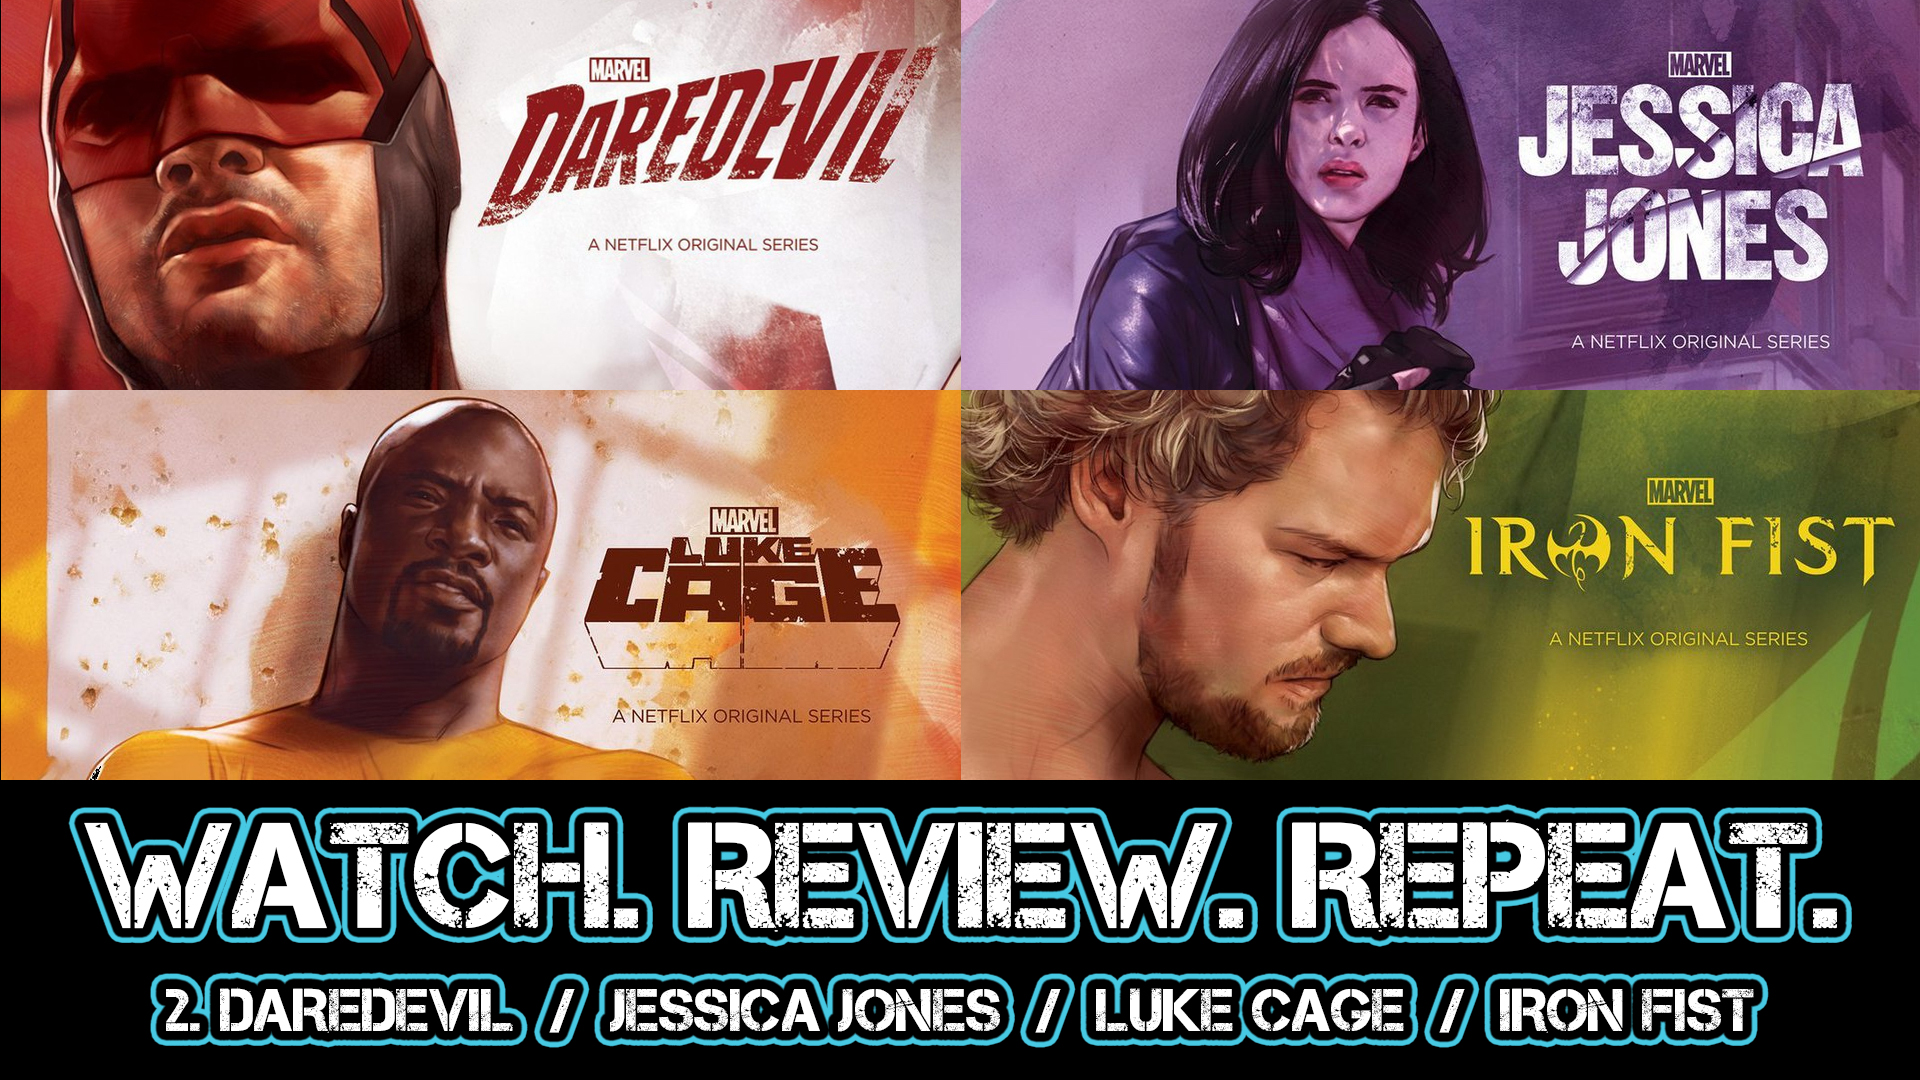 Copy of 2. Daredevil/ Jessica Jones/ Luke Cage/ Iron Fist